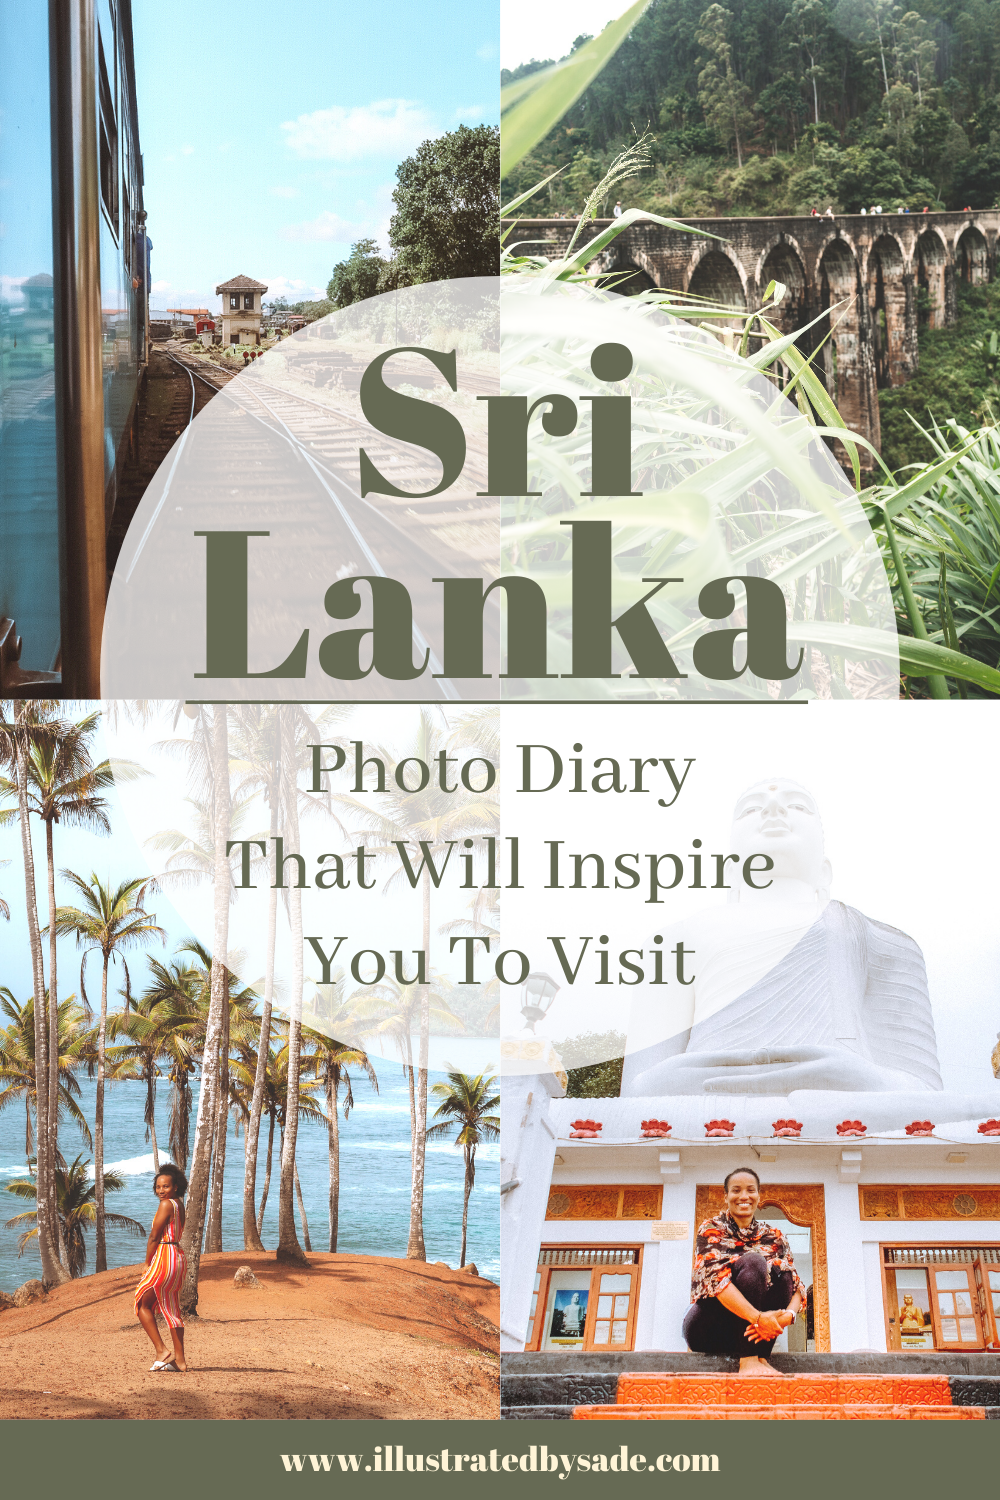 Photo Diary That Will Inspire You to Visit Sri Lanka